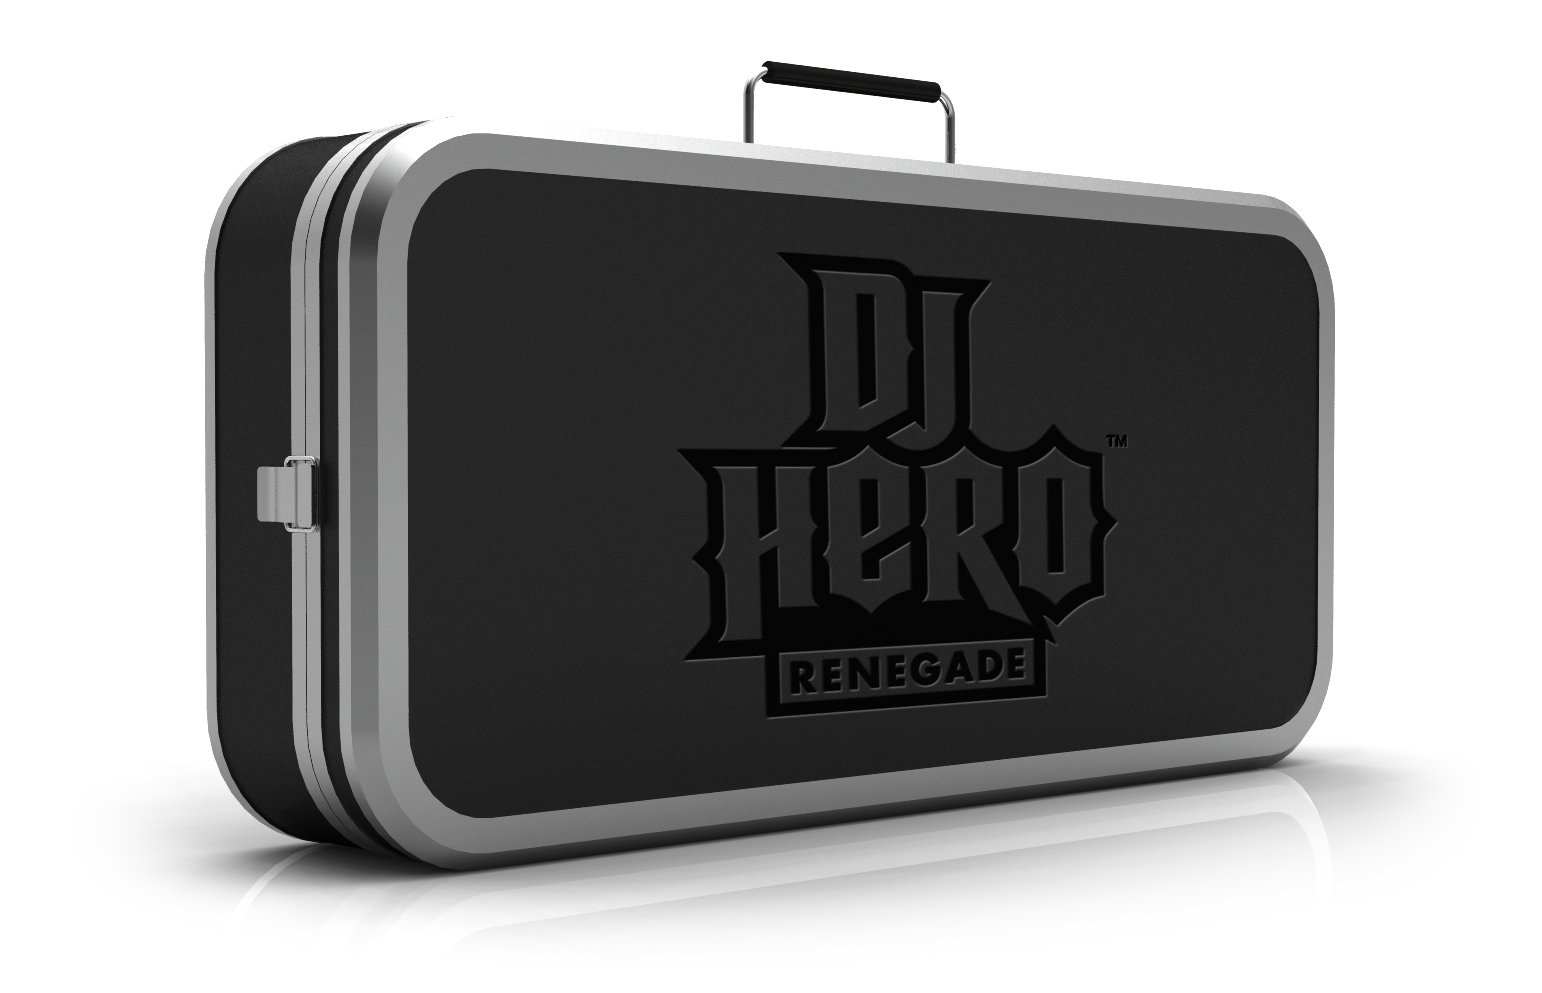 The DJ Hero Renegade Edition.